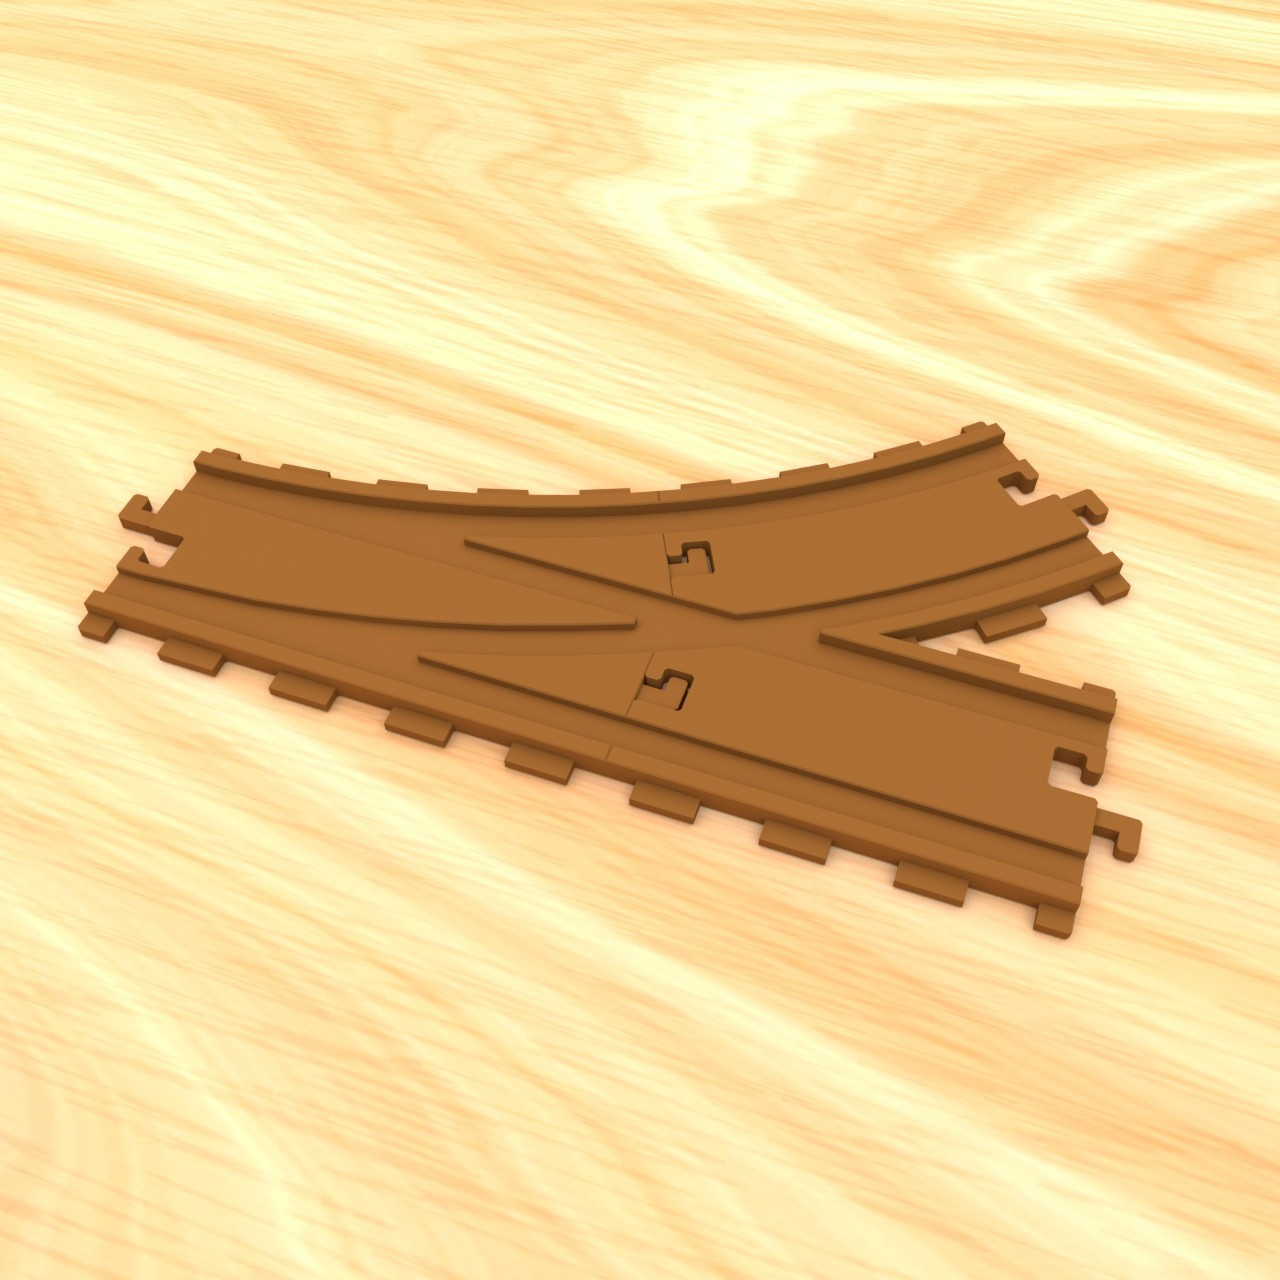 smalltoys-trainswitches03.jpg Download STL file SmallToys - Railway tracks - Switches • 3D print design, Wabby